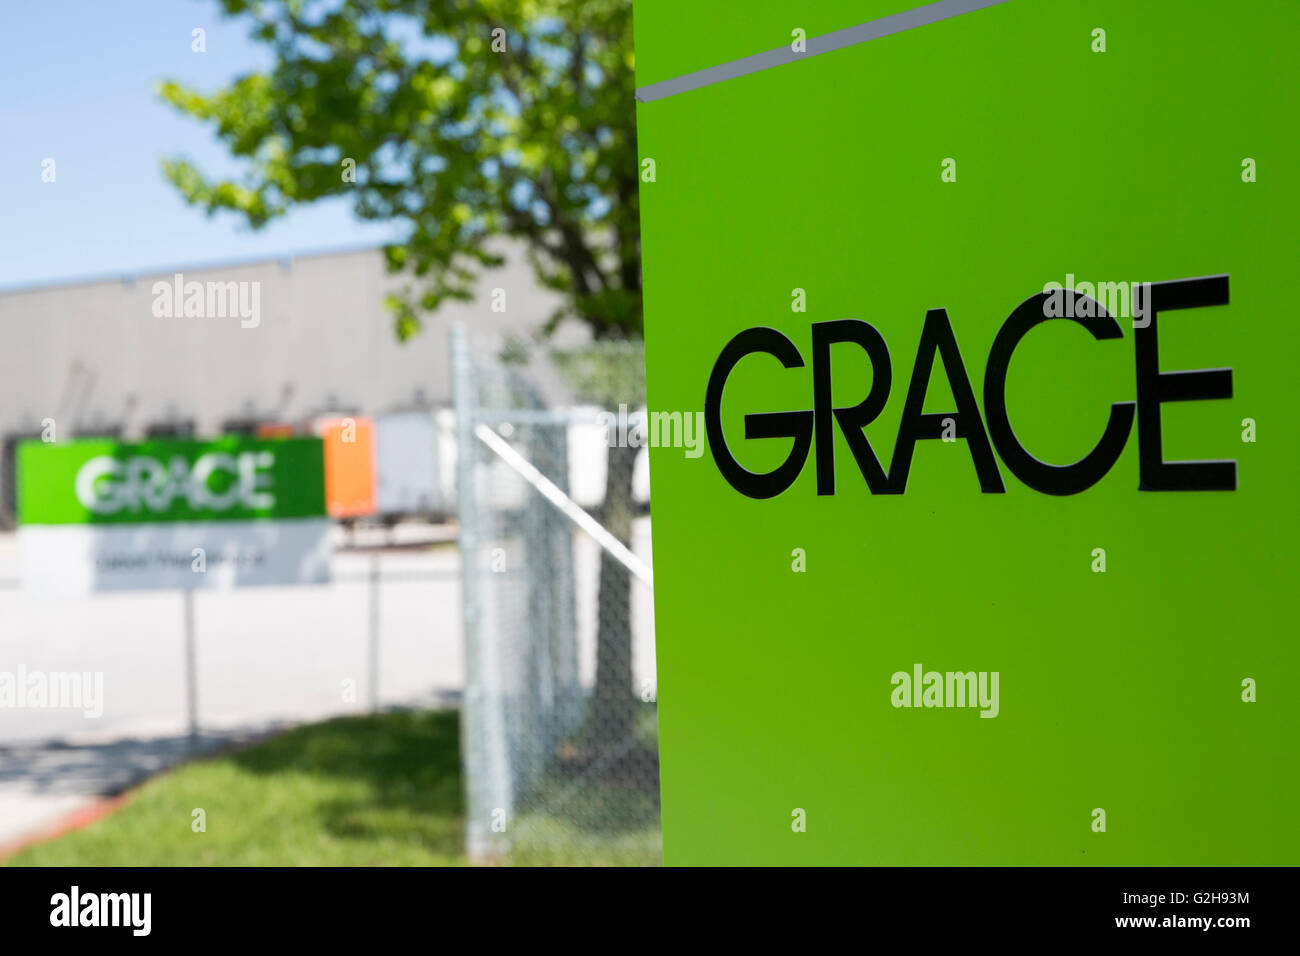 A logo sign outside of a facility occupied by W.R. Grace & Co., in Curtis Bay, Maryland on May 8, 2016. Stock Photo